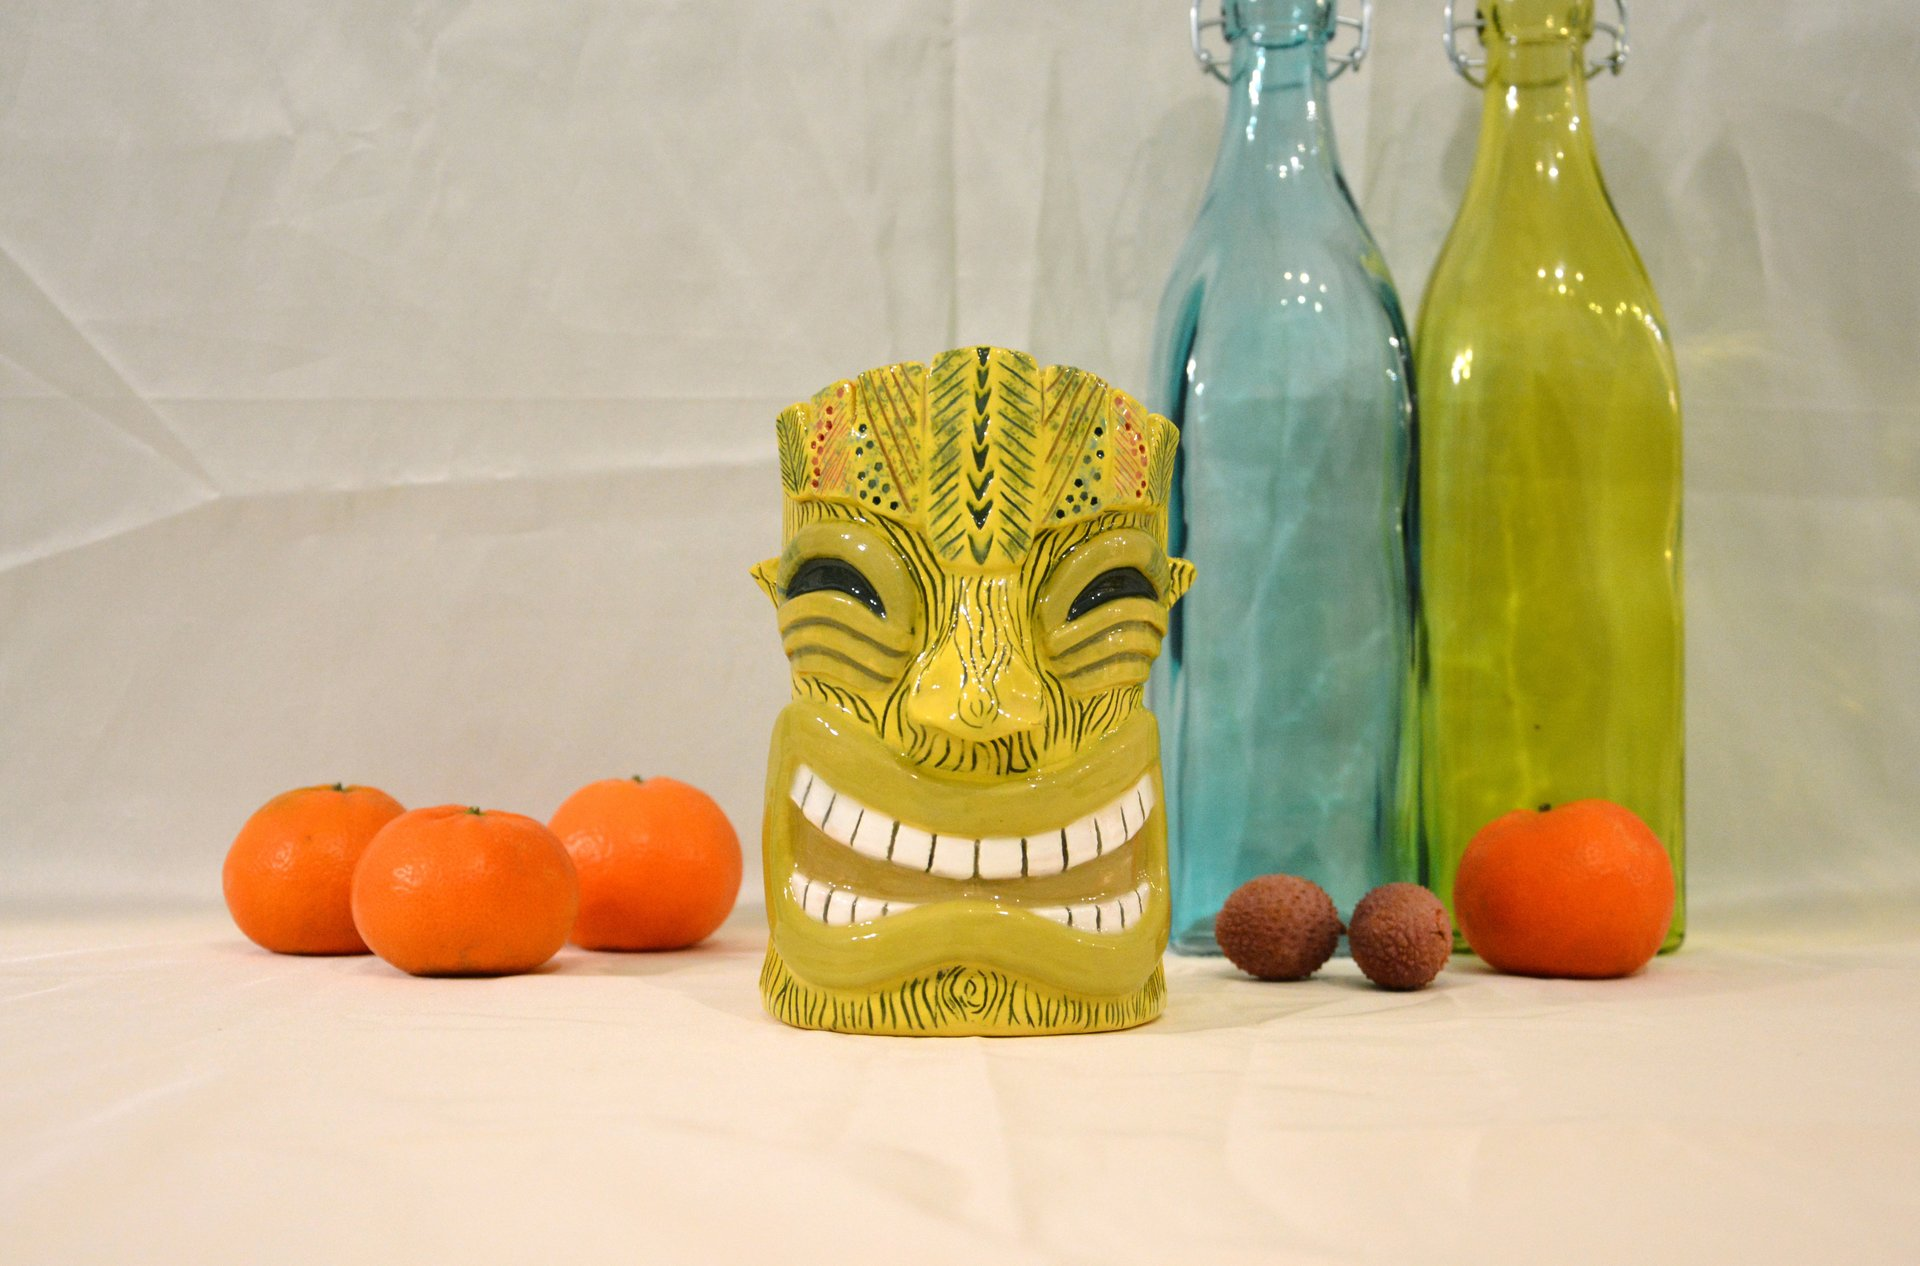 Glass of Tiki yellow big, height - 14 cm, volume - 0,6 l, photo 7 of 7.